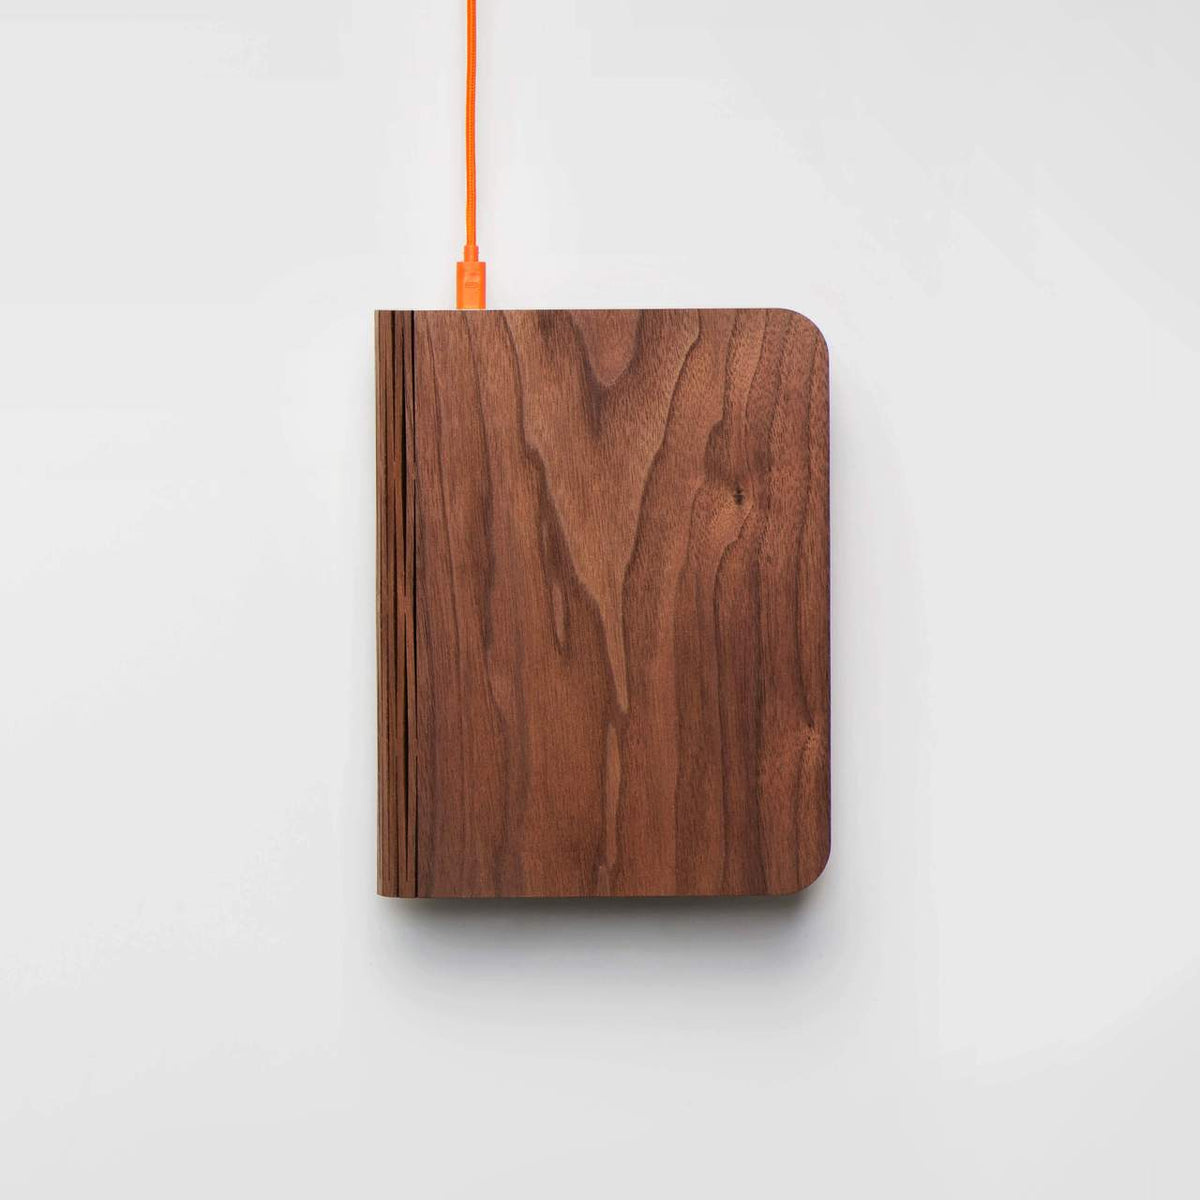 Walnut lumio with Charging cable